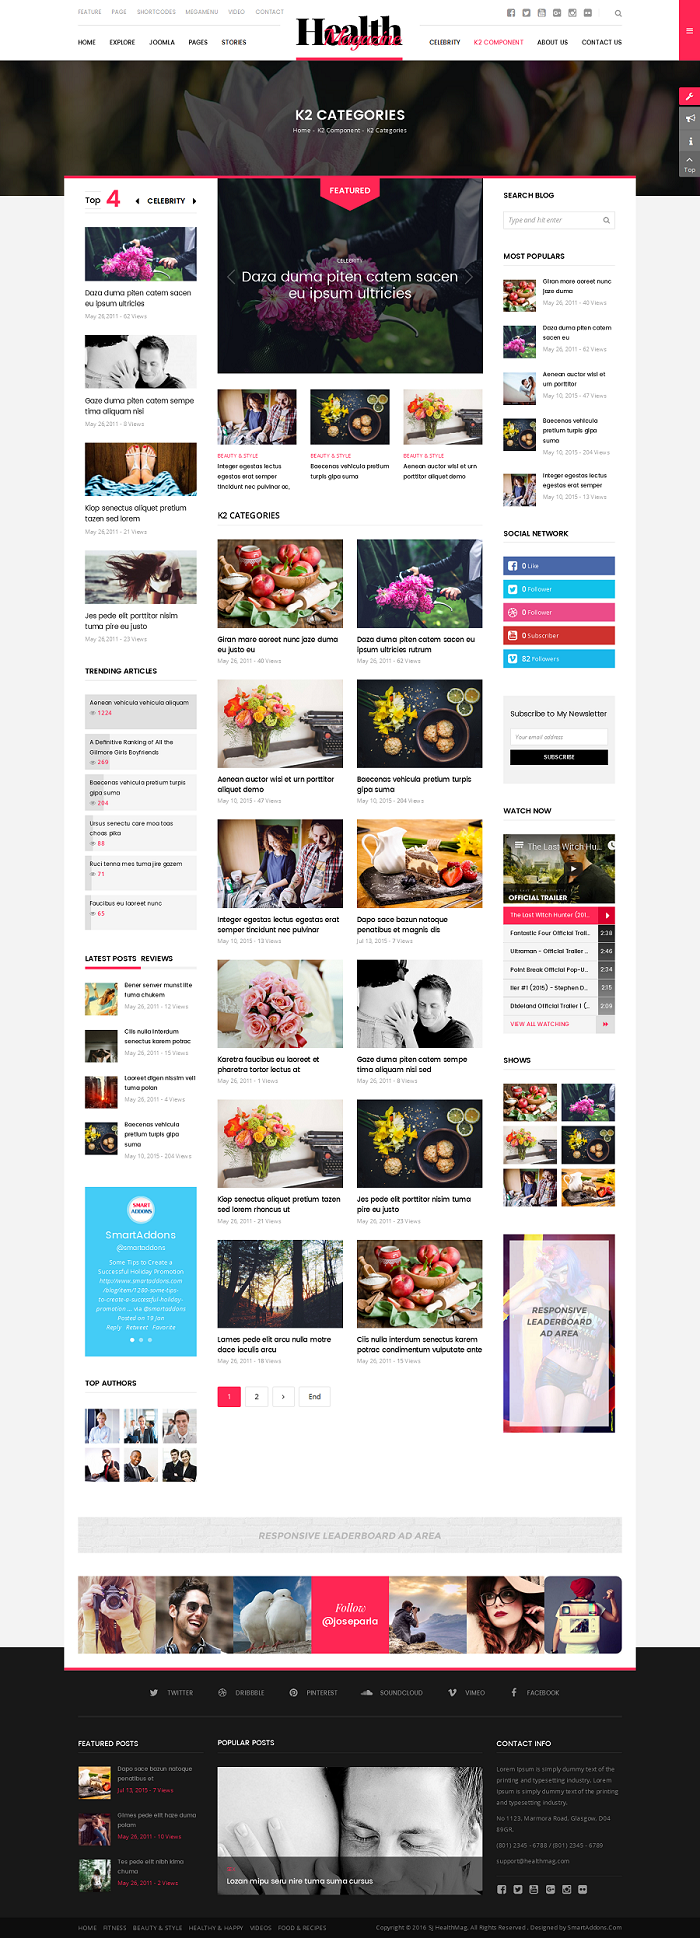 SJ HealthMag - Responsive Joomla news magazine Template - 04_category.png